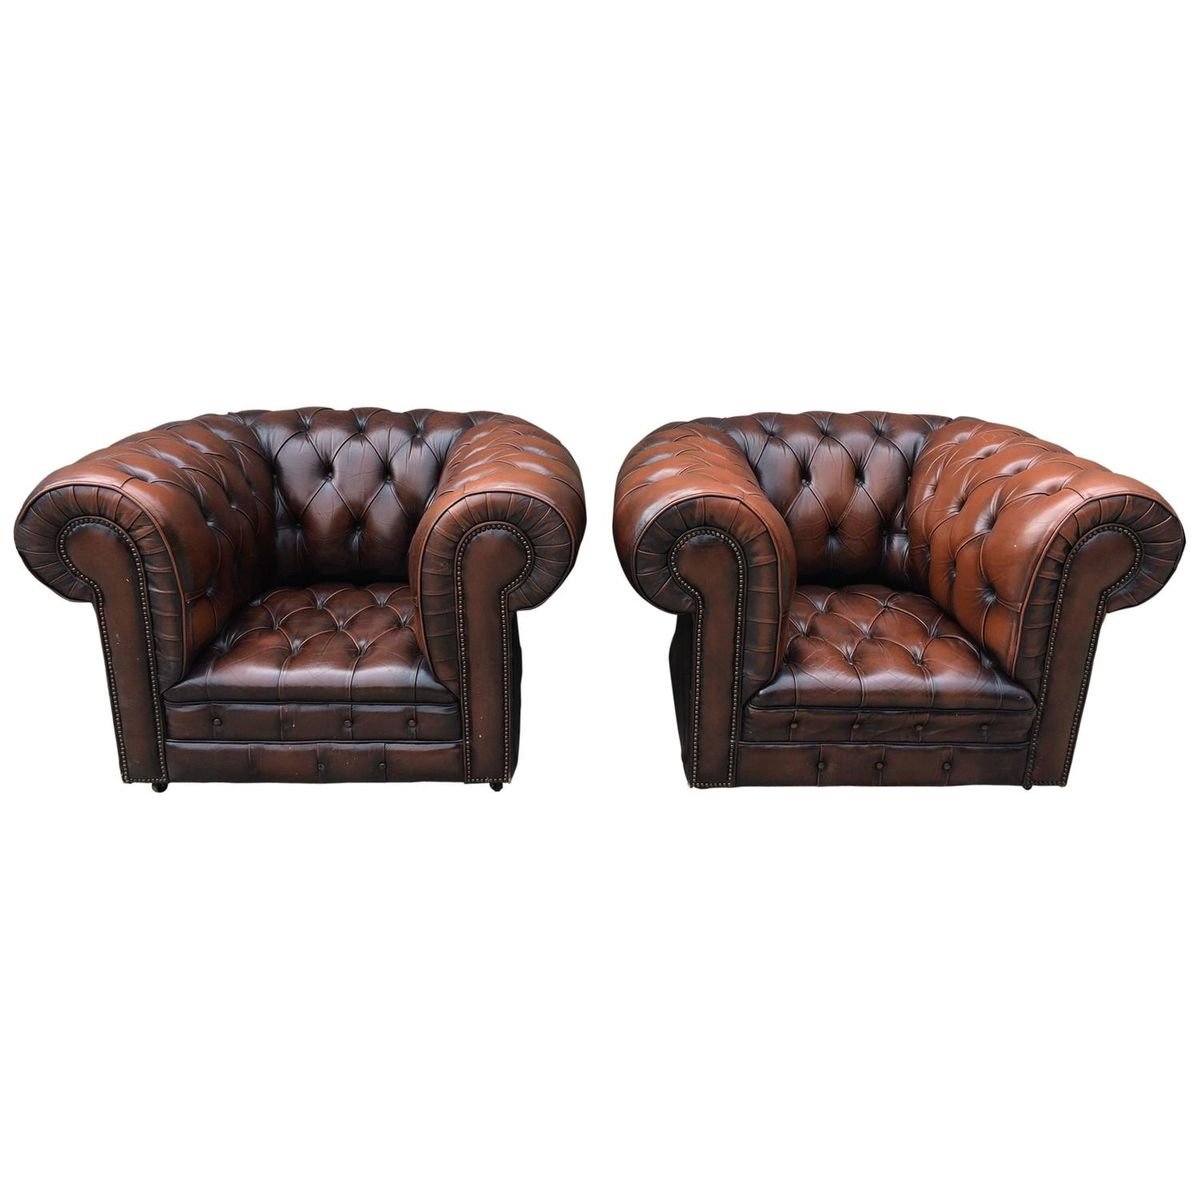 vintage leder chesterfield clubsessel 2er set bei pamono kaufen. Black Bedroom Furniture Sets. Home Design Ideas